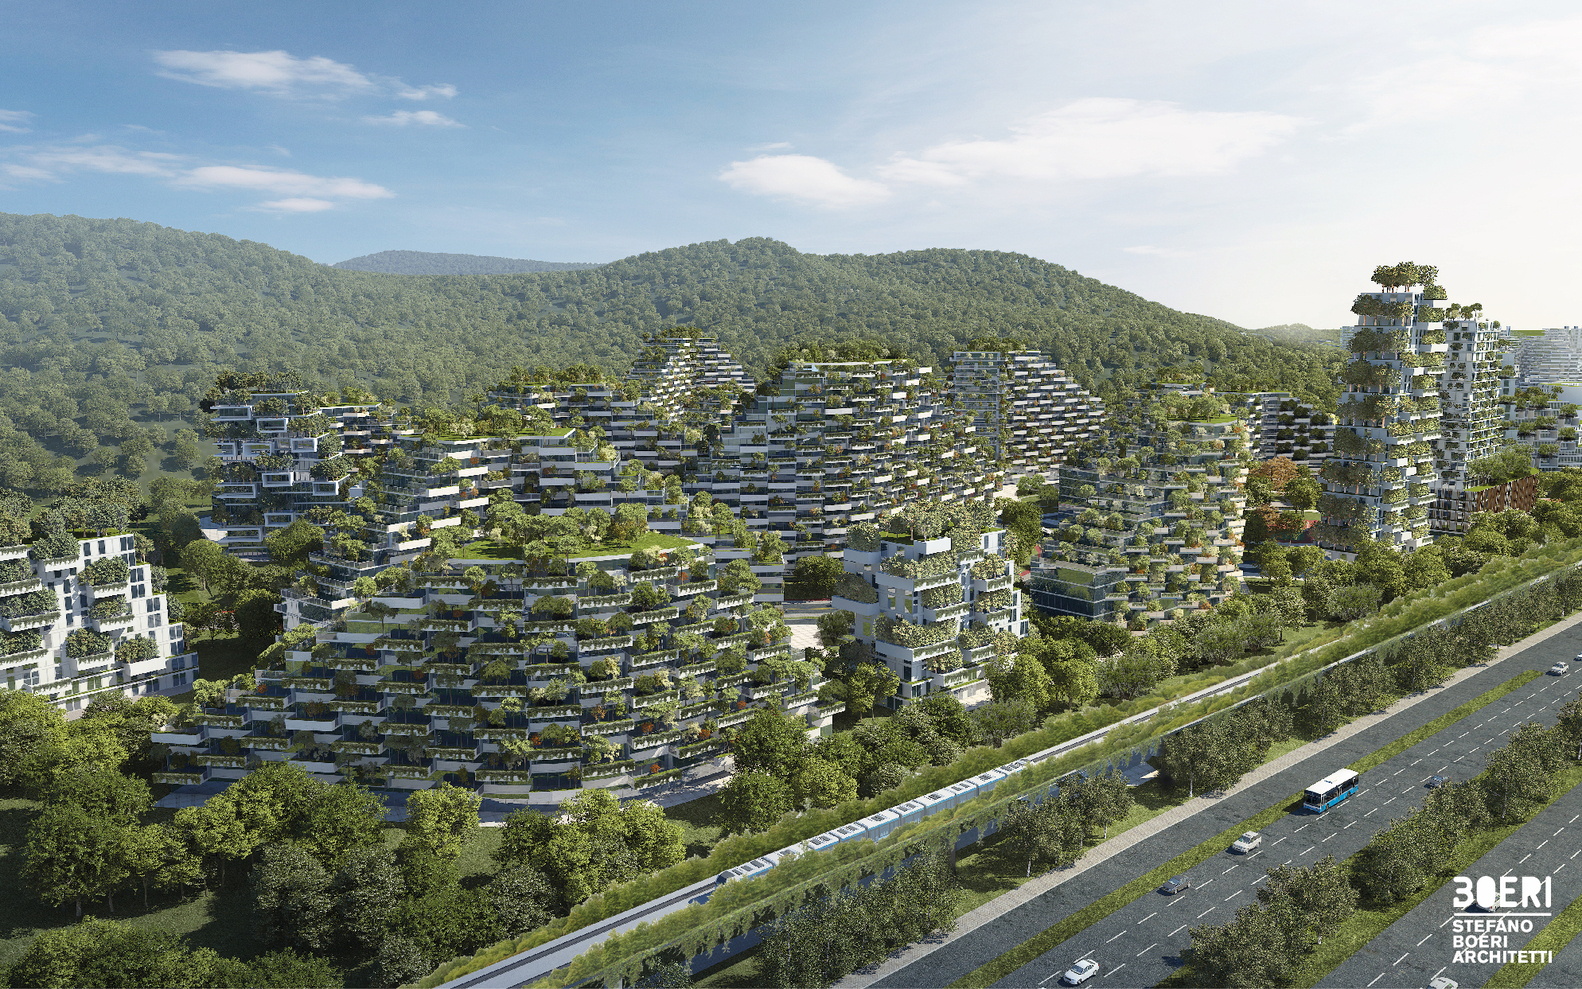 The Liuzhou Forest City project will eventually accommodate 30,000 people. To learn more, visit https://www.stefanoboeriarchitetti.net/en/